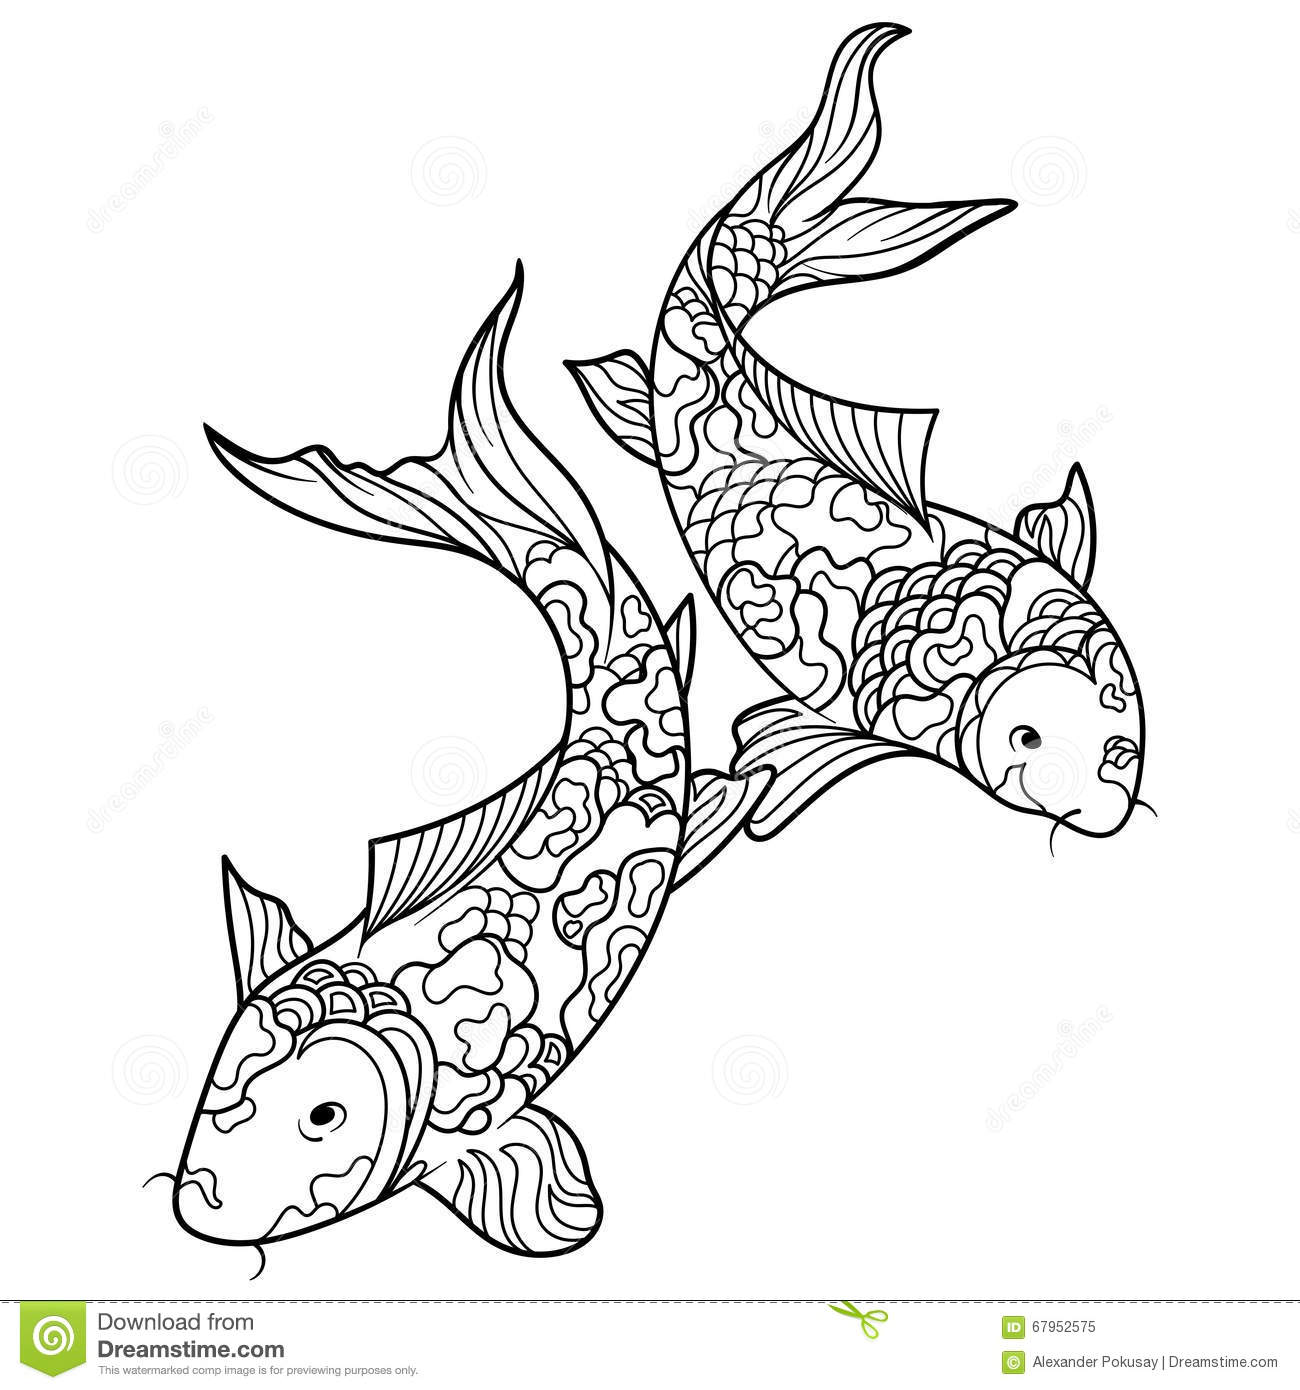 Koi Carp Fish Coloring Book For Adults Vector Royalty Free Stock Photo